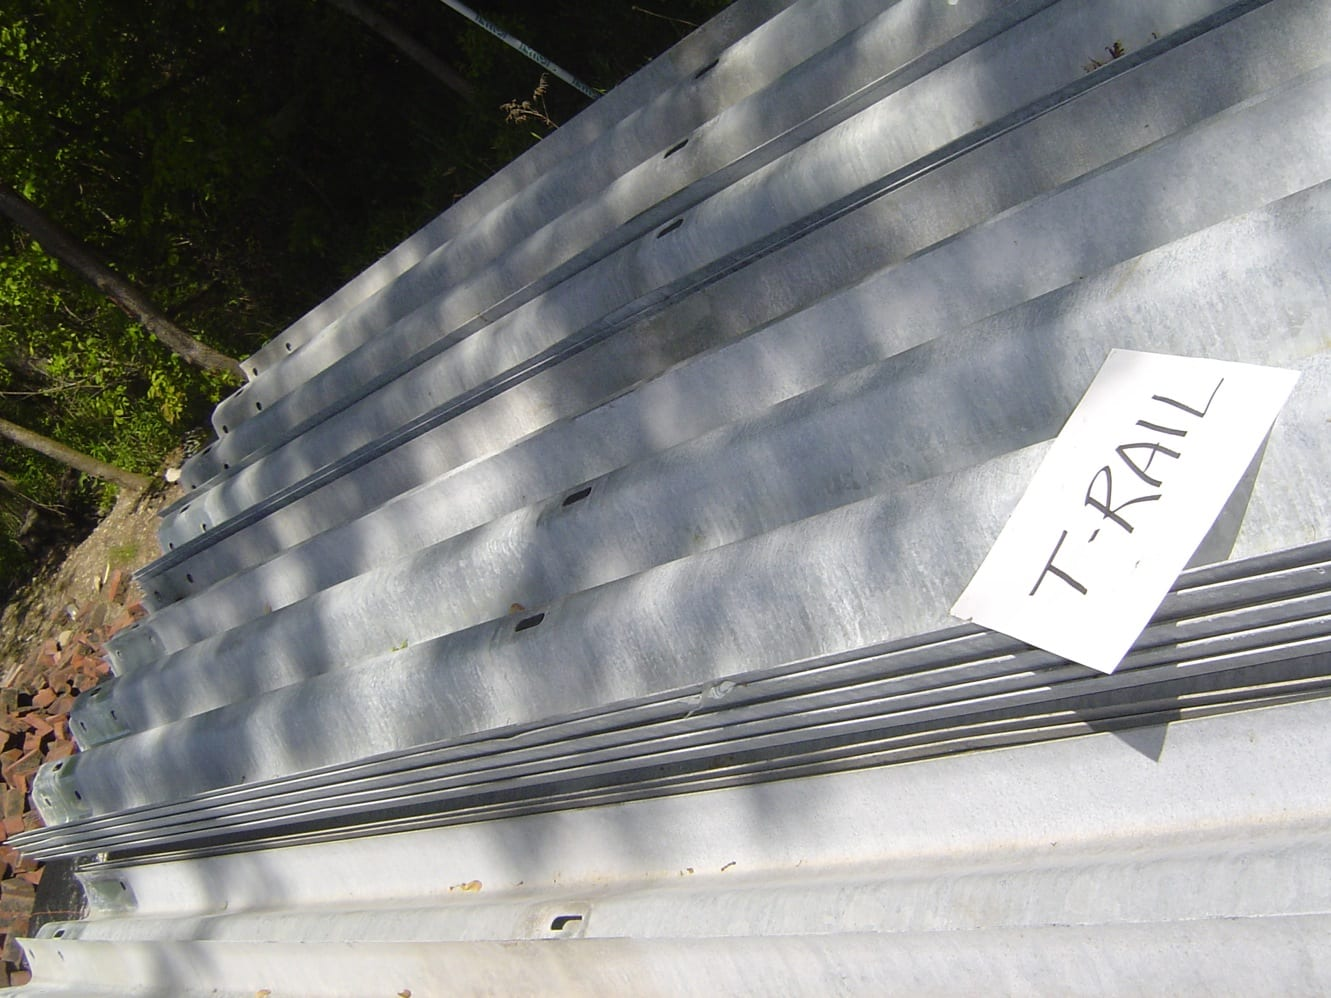 Thrie-Beam Feed Bunk - Used Thrie-Beam Guardrail For Sale